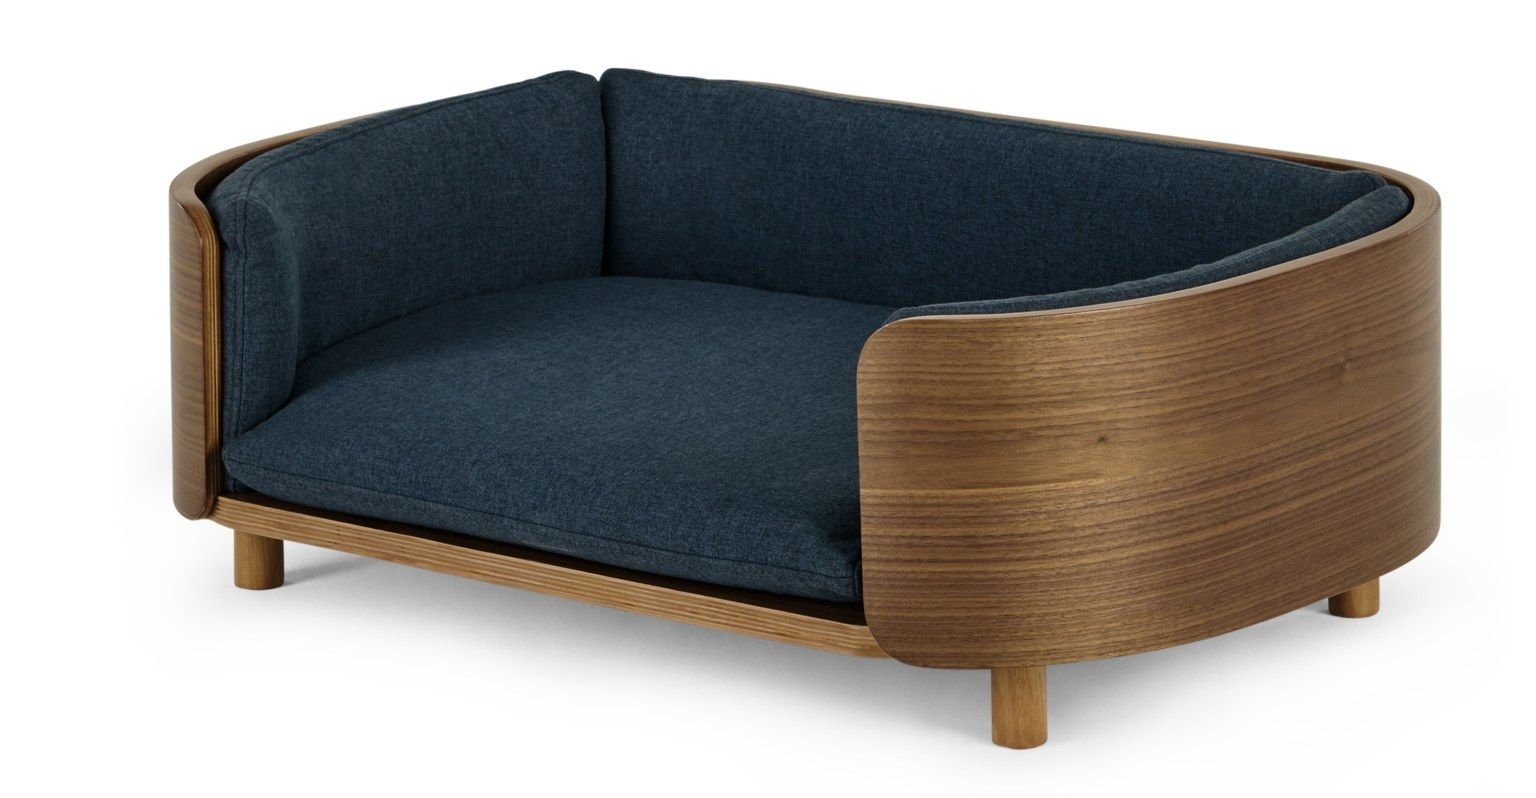 Kyali Dog Sofa, Natural Walnut and Navy, S/M in 2020 Dog